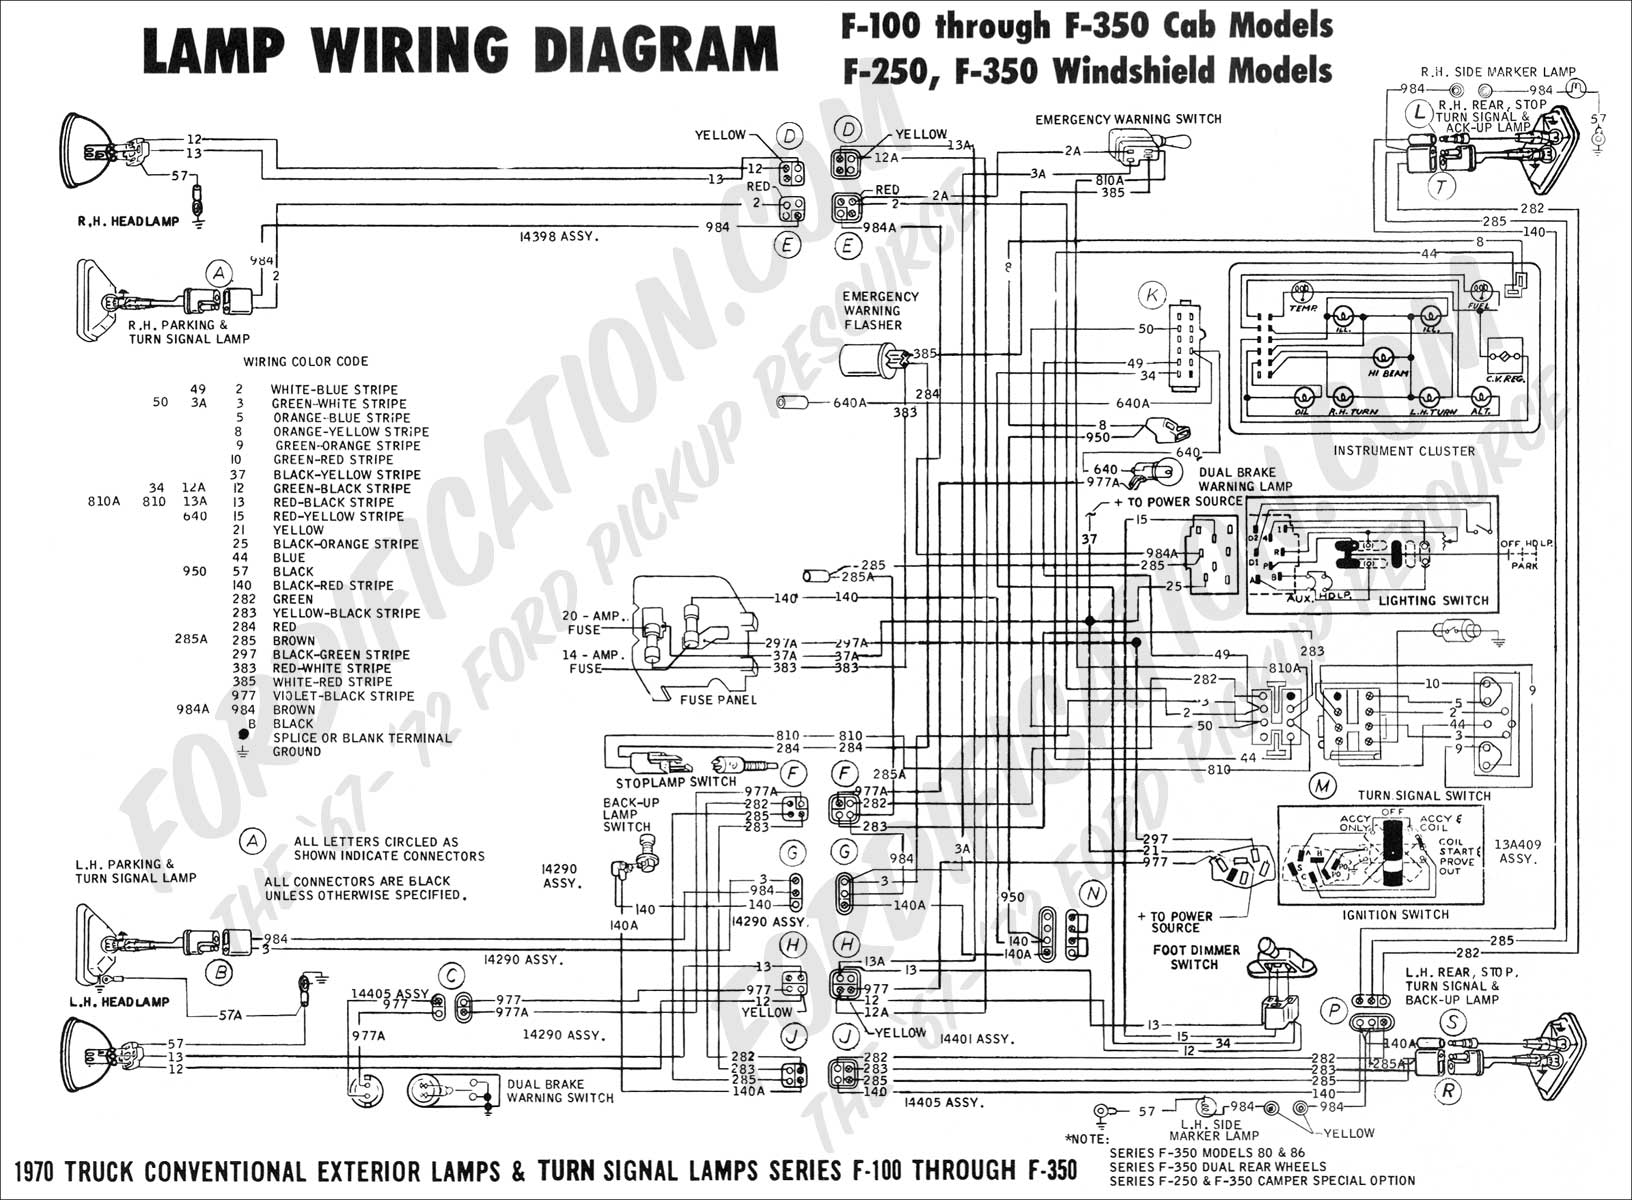 ford super duty trailer wiring diagram meetcolab 2008 ford super duty trailer wiring diagram 1970 f 100 f250 lamp